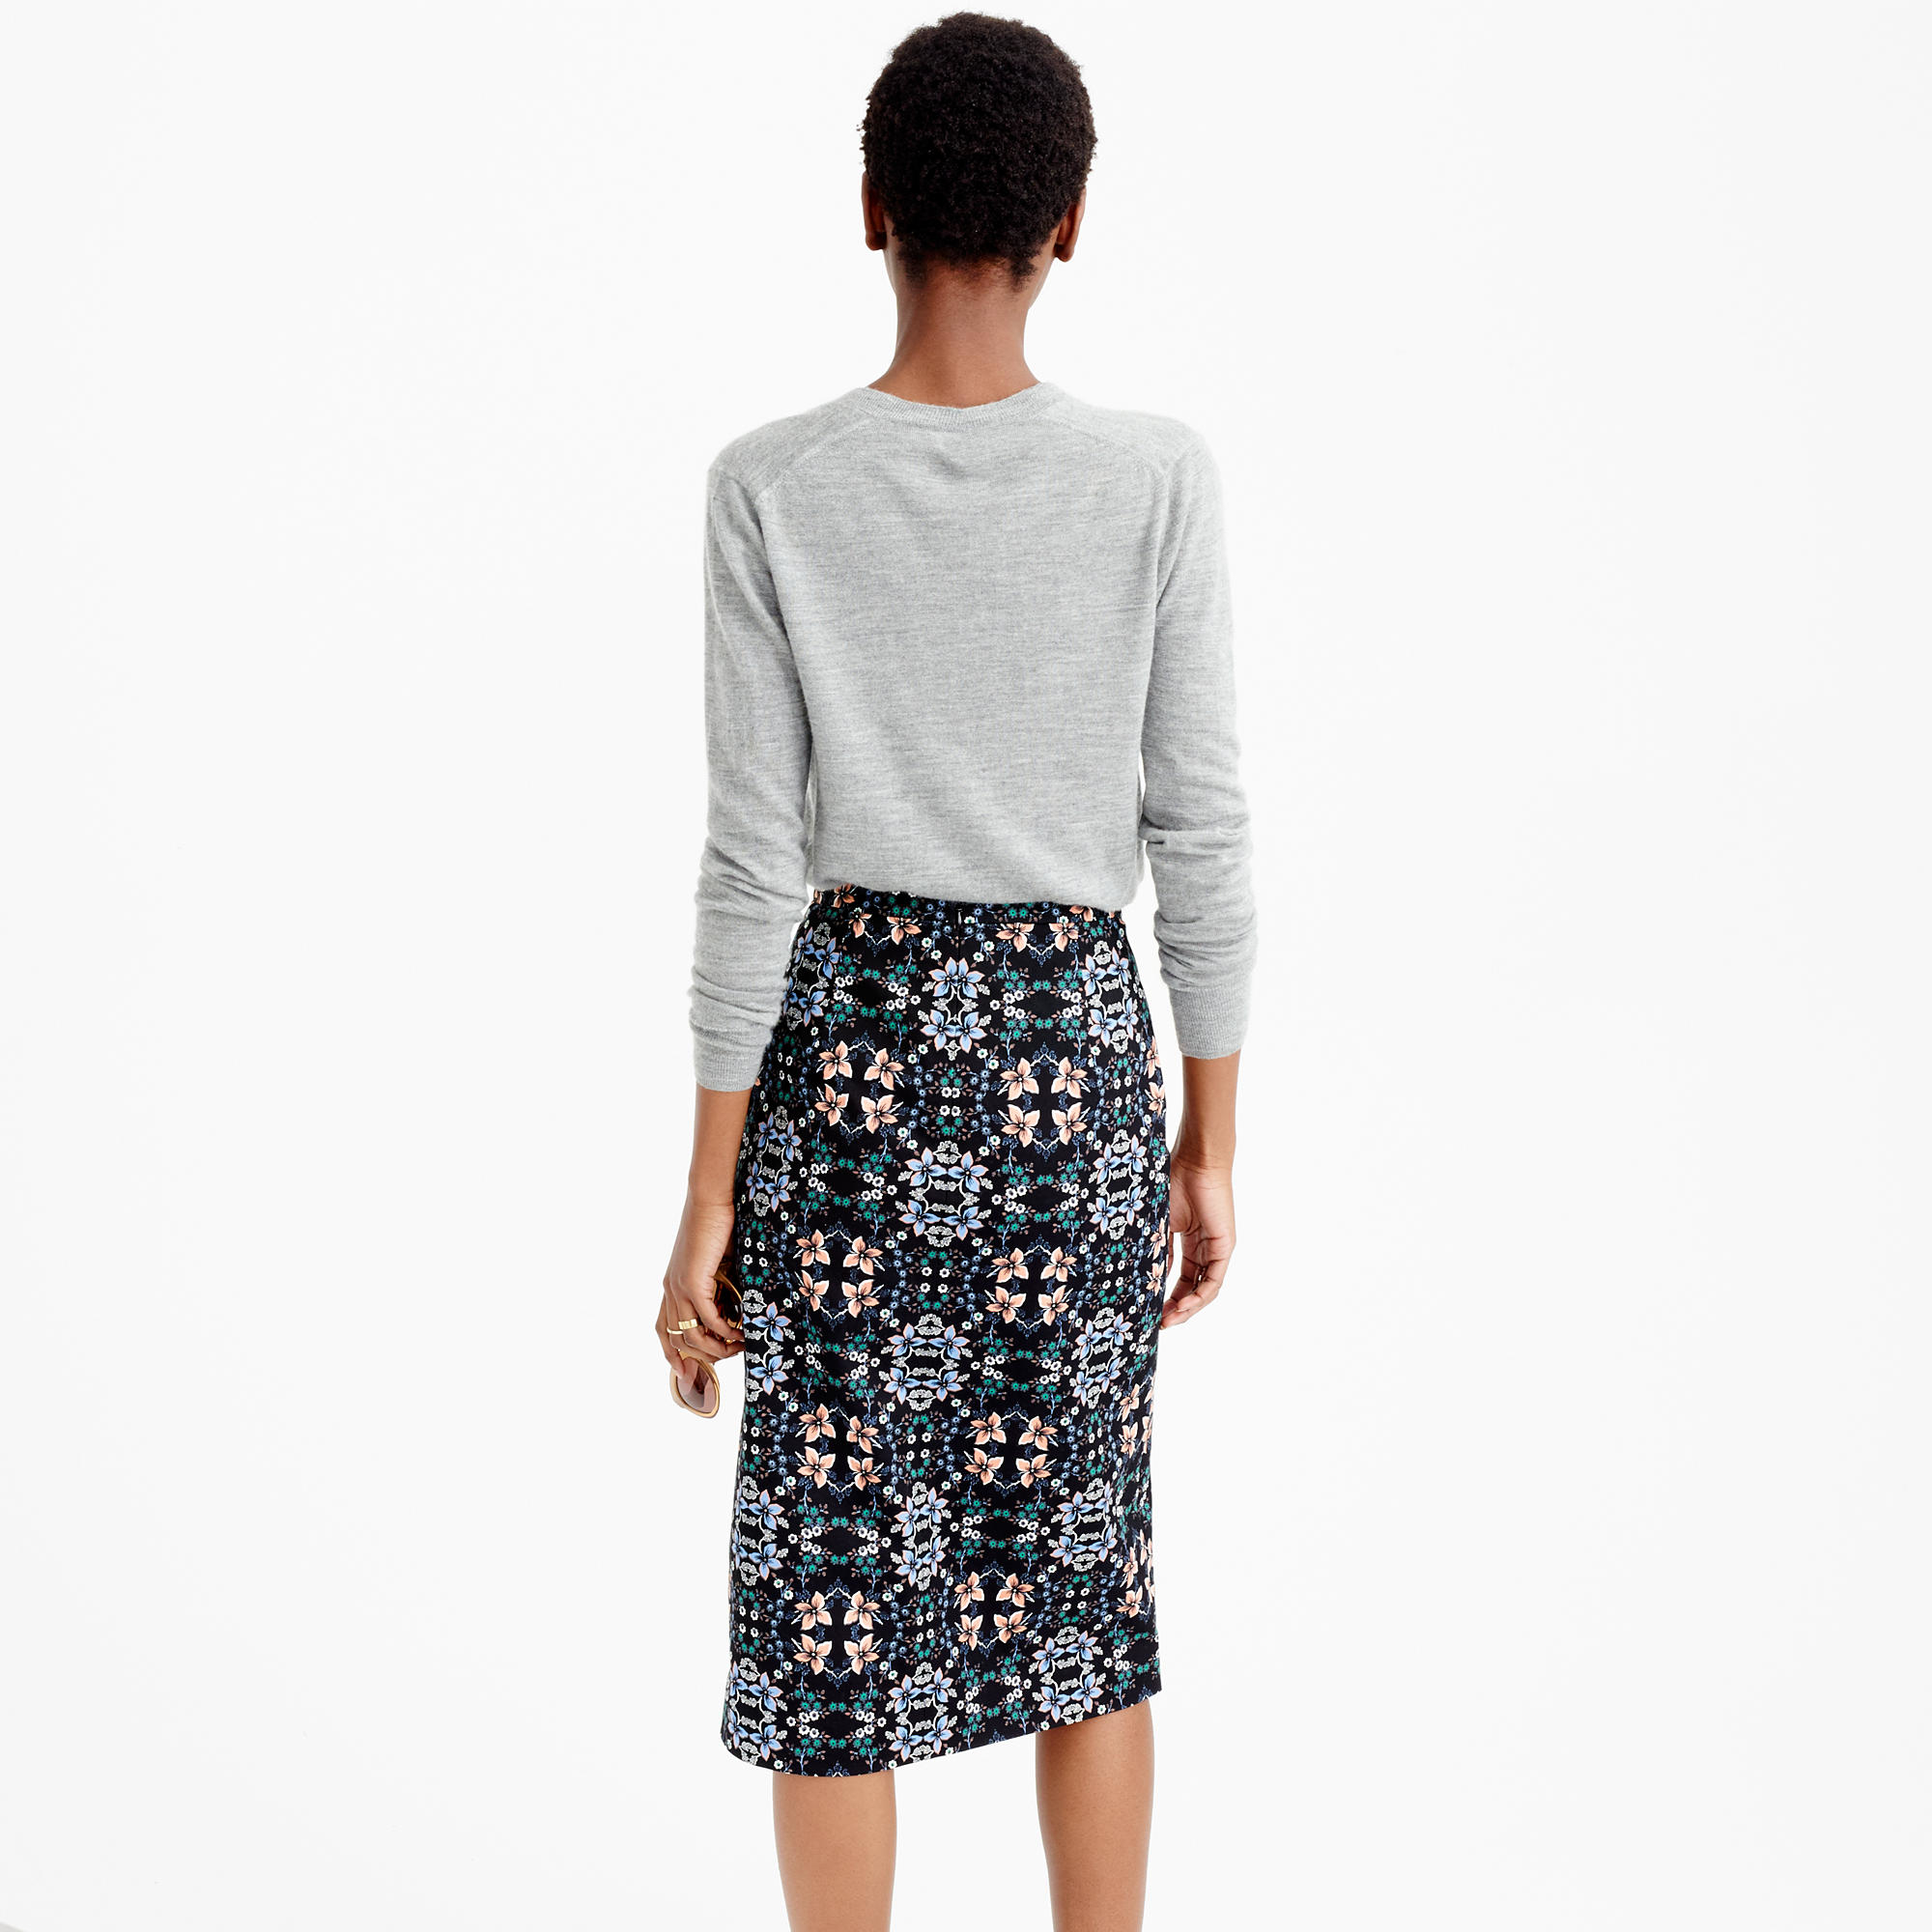 J.crew A-line Midi Skirt In Mirrored Floral in Black | Lyst